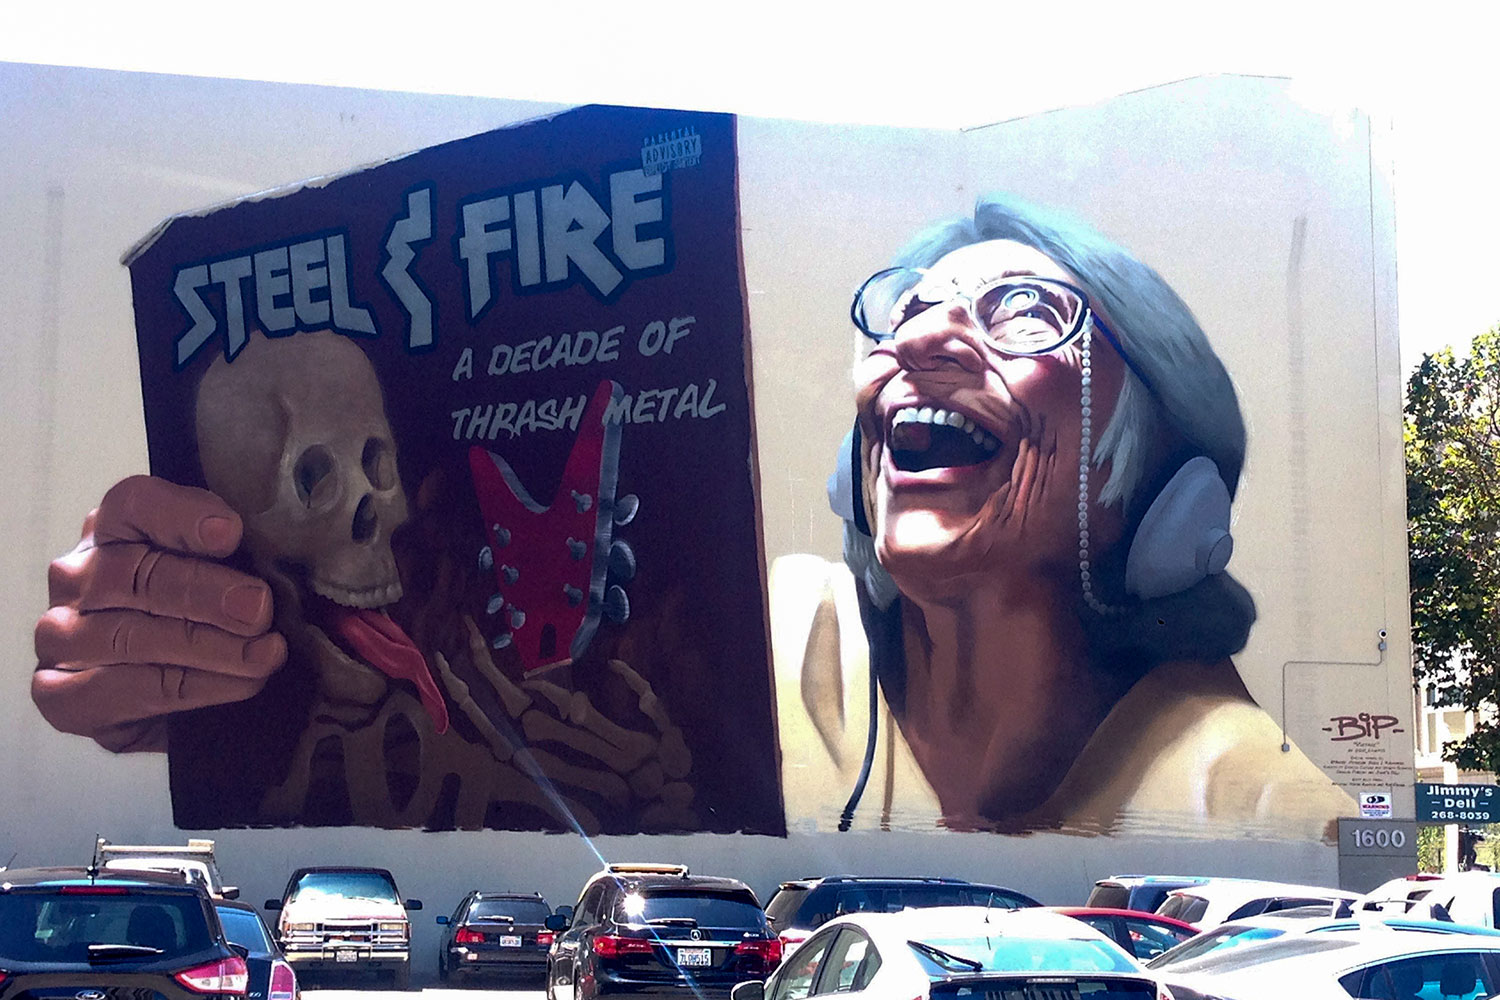 Coolest. Mural. EVER!